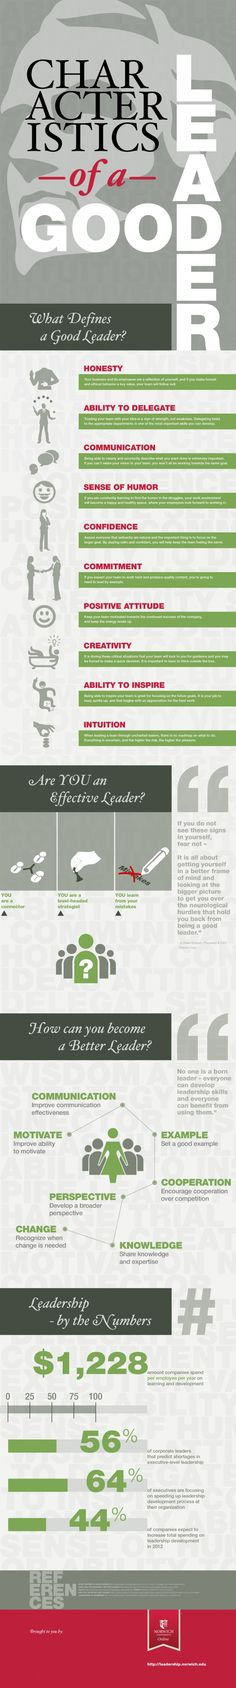 Are you a good leader? Check this out... #infografía